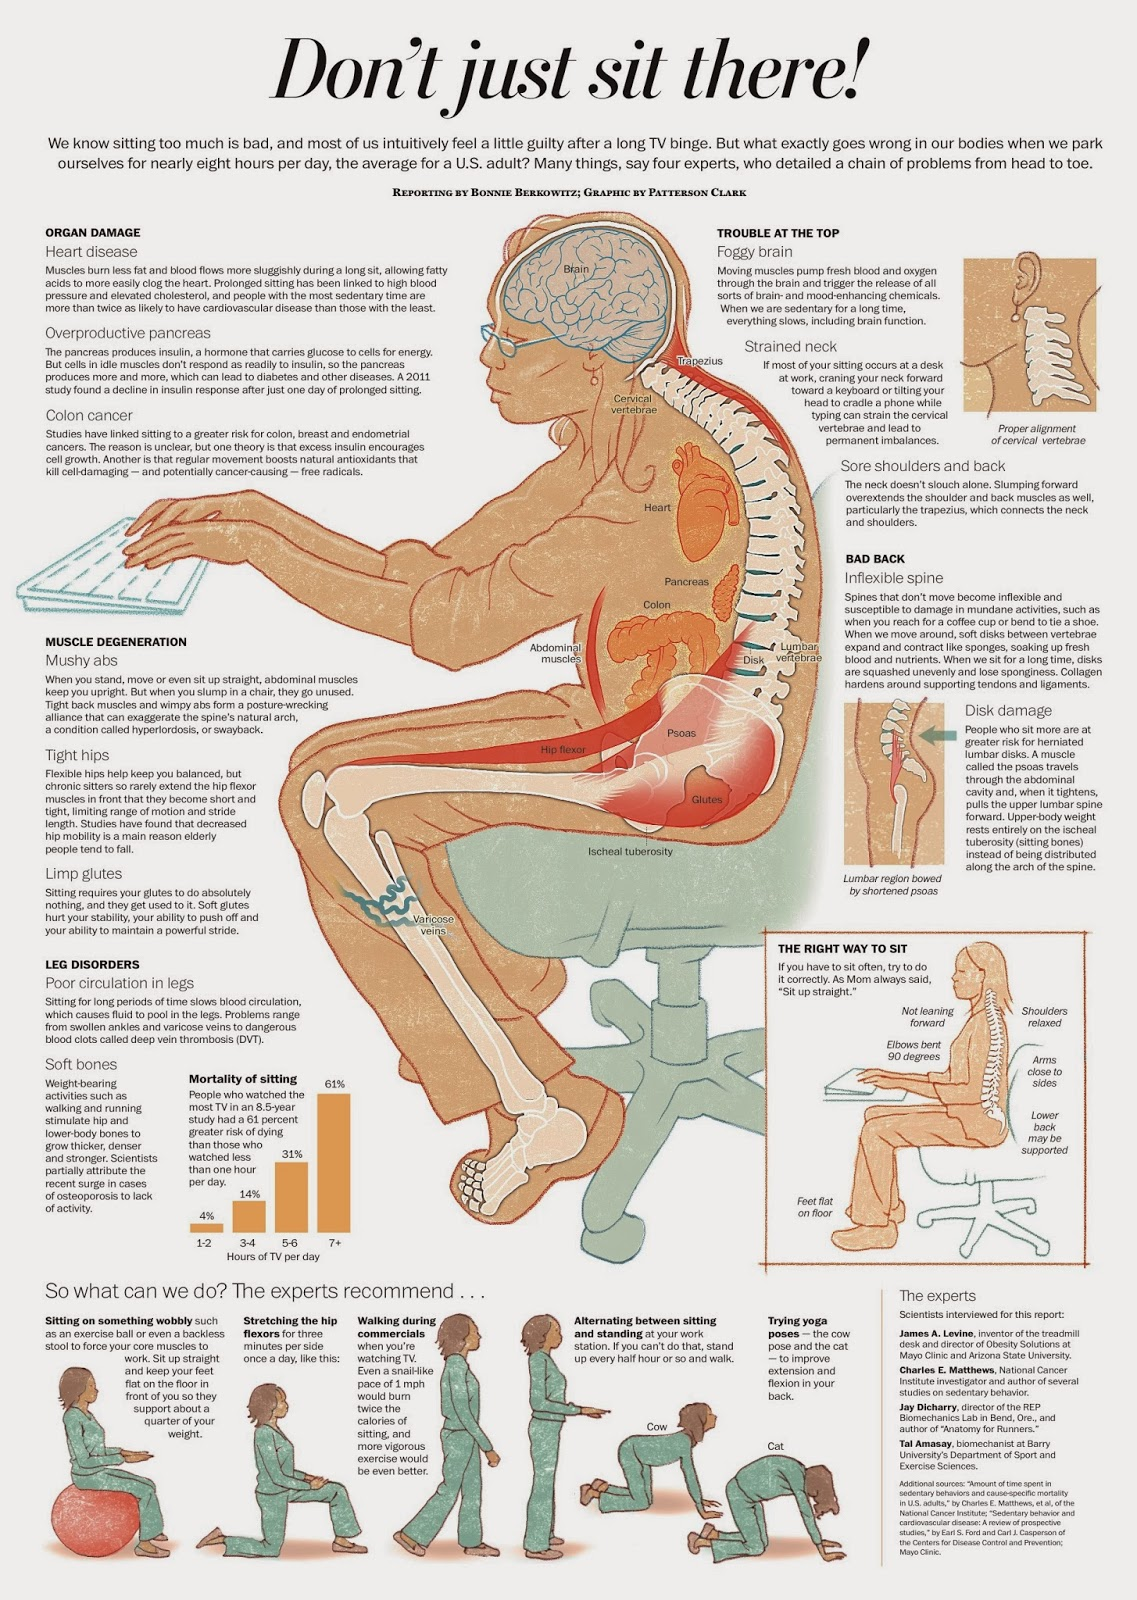 How you are damaging your health by just sitting there and looking ...